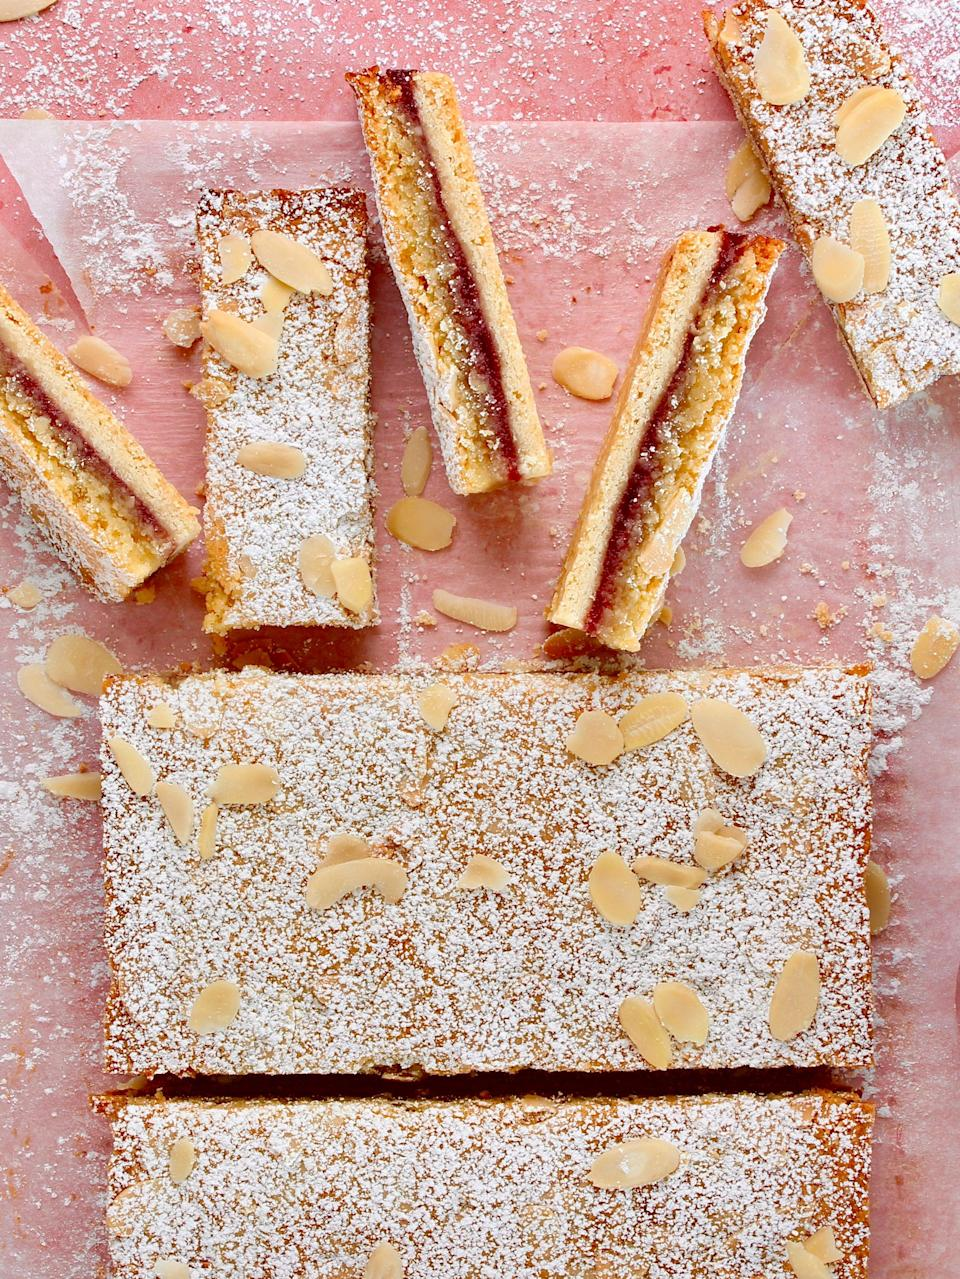 This pastry makes for a sweet midday snack, perfect with a pitcher of lemonade (Easy Peasy Baking Campaign)